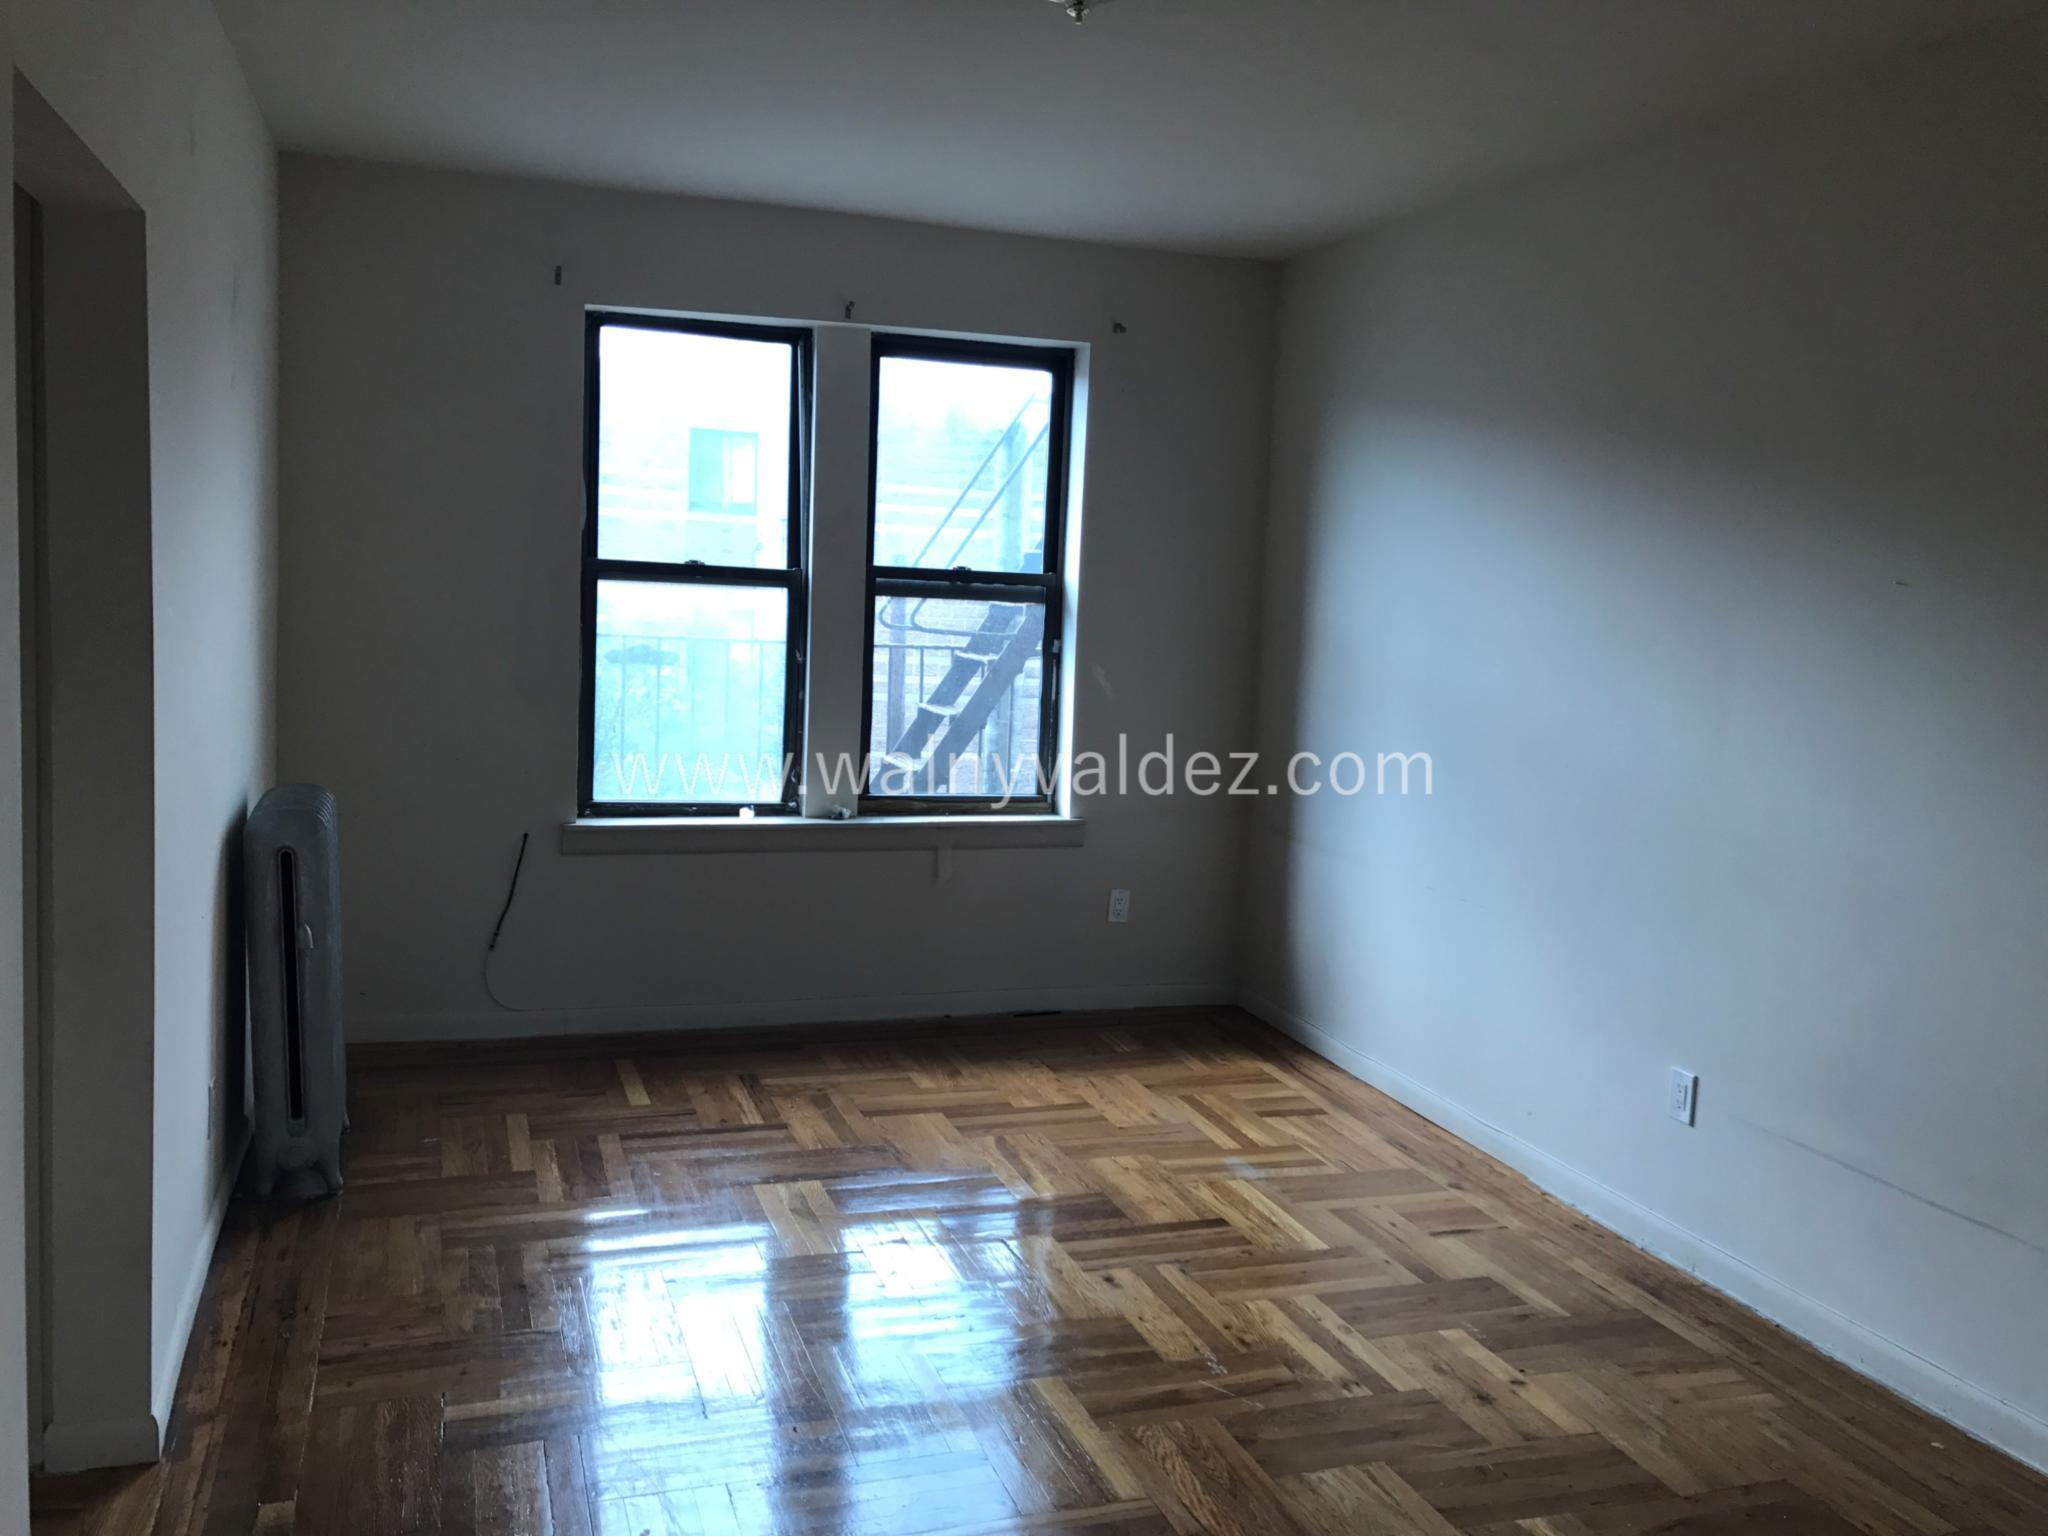 1487 Teller Ave, Bronx, NY 10457 For Rent | Trulia